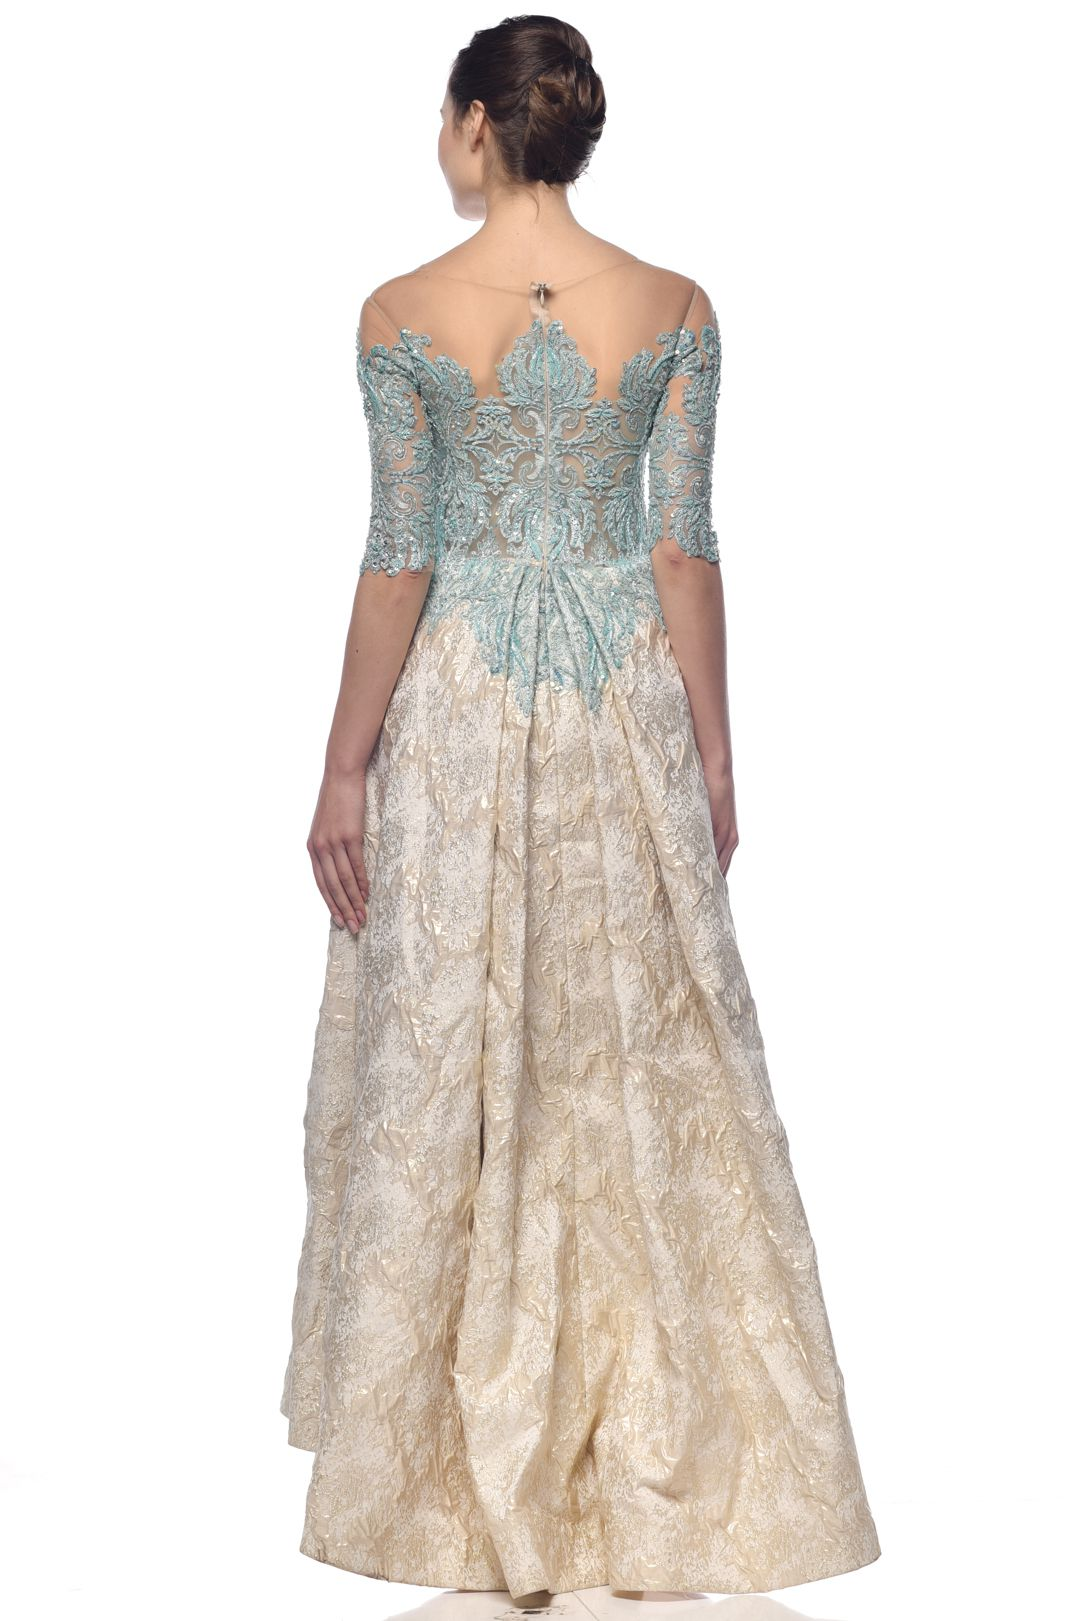 Majestic Blue Gown